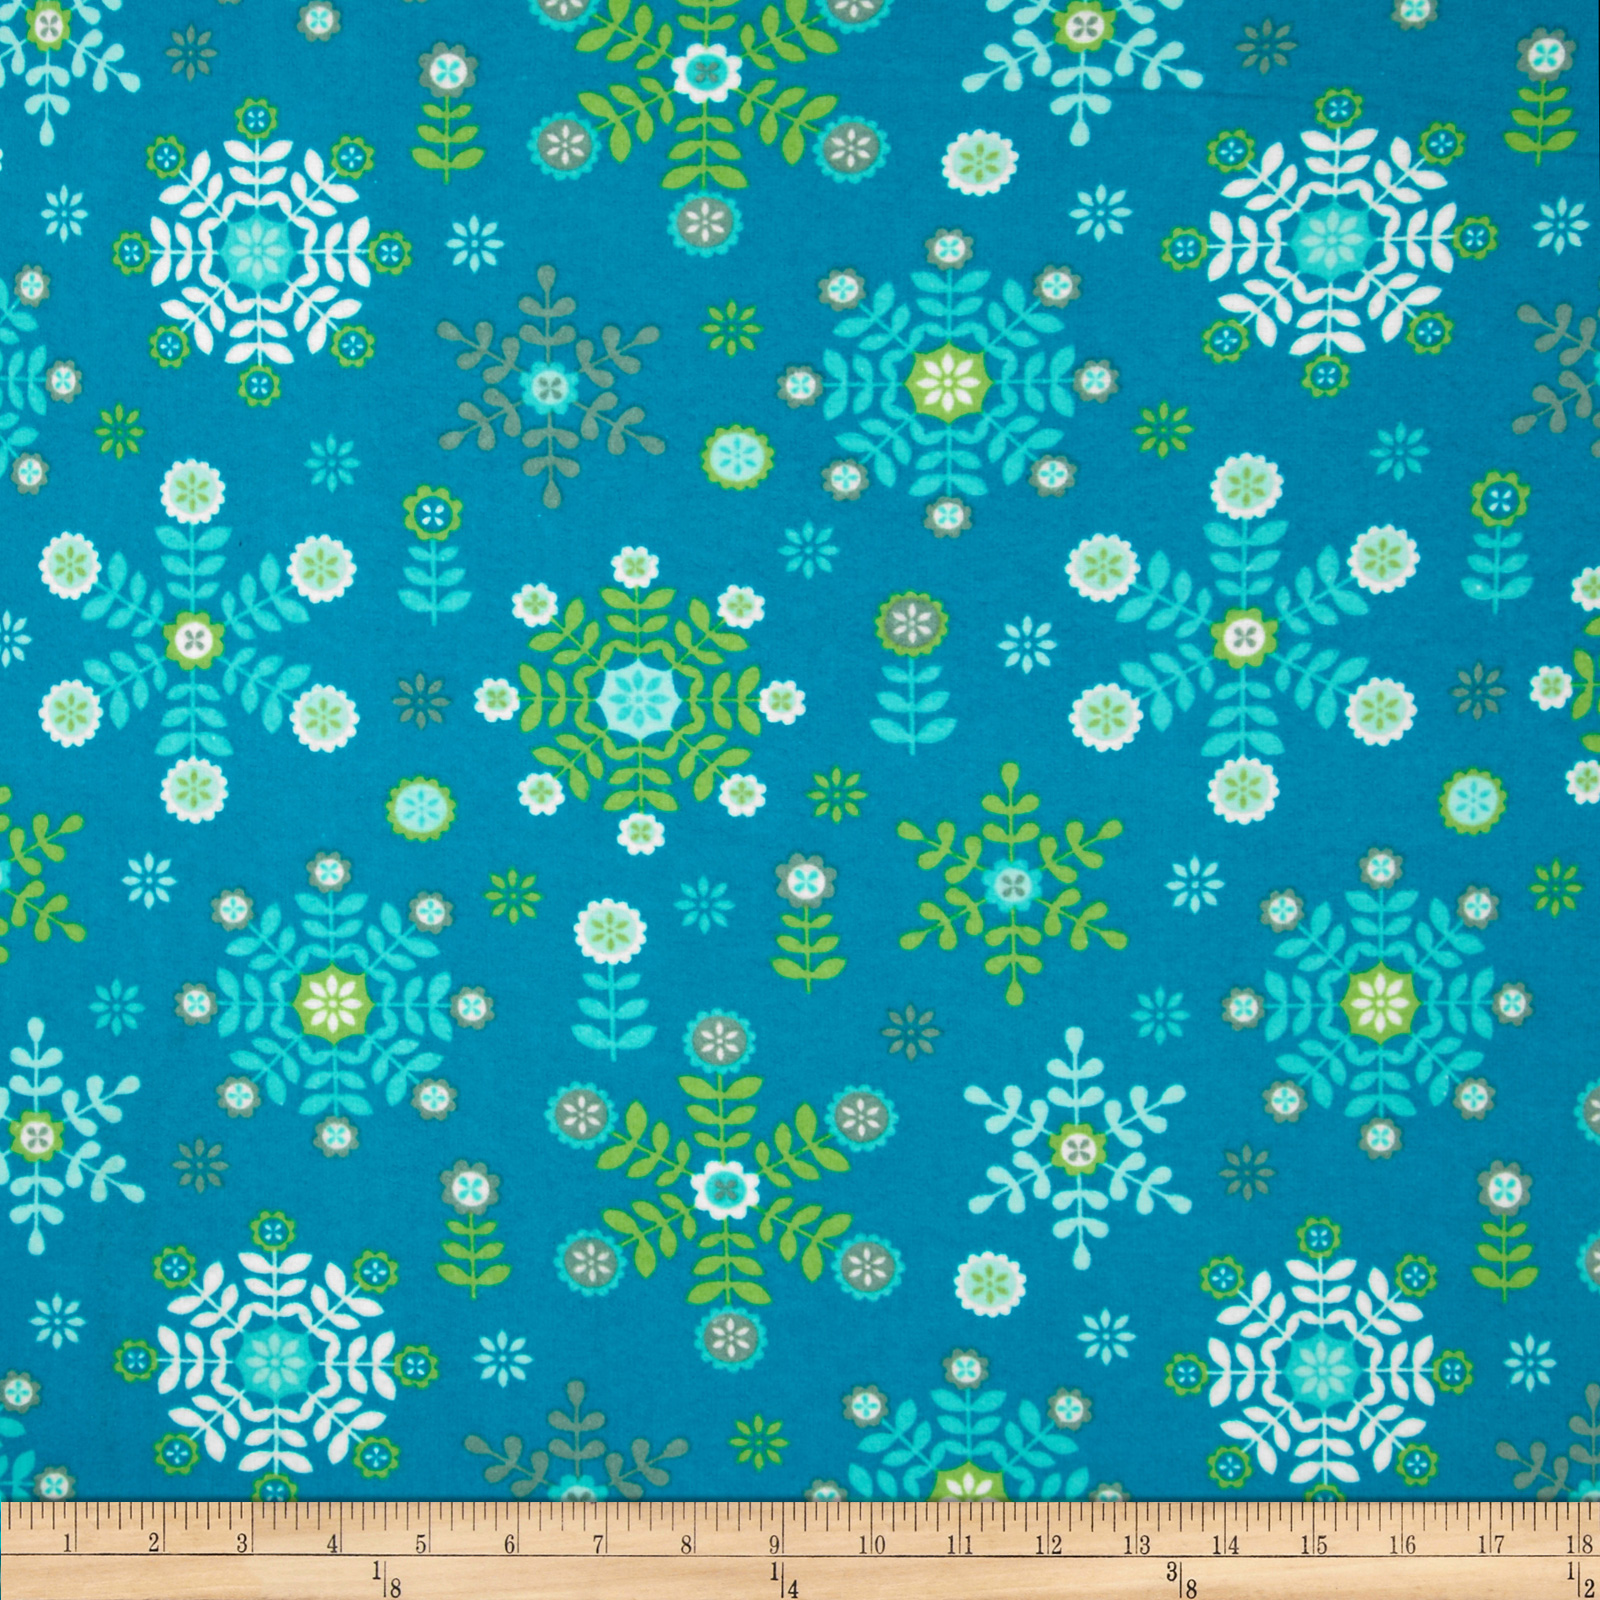 Winter Warmth Flannel Large Floral Snowflakes Turquoise